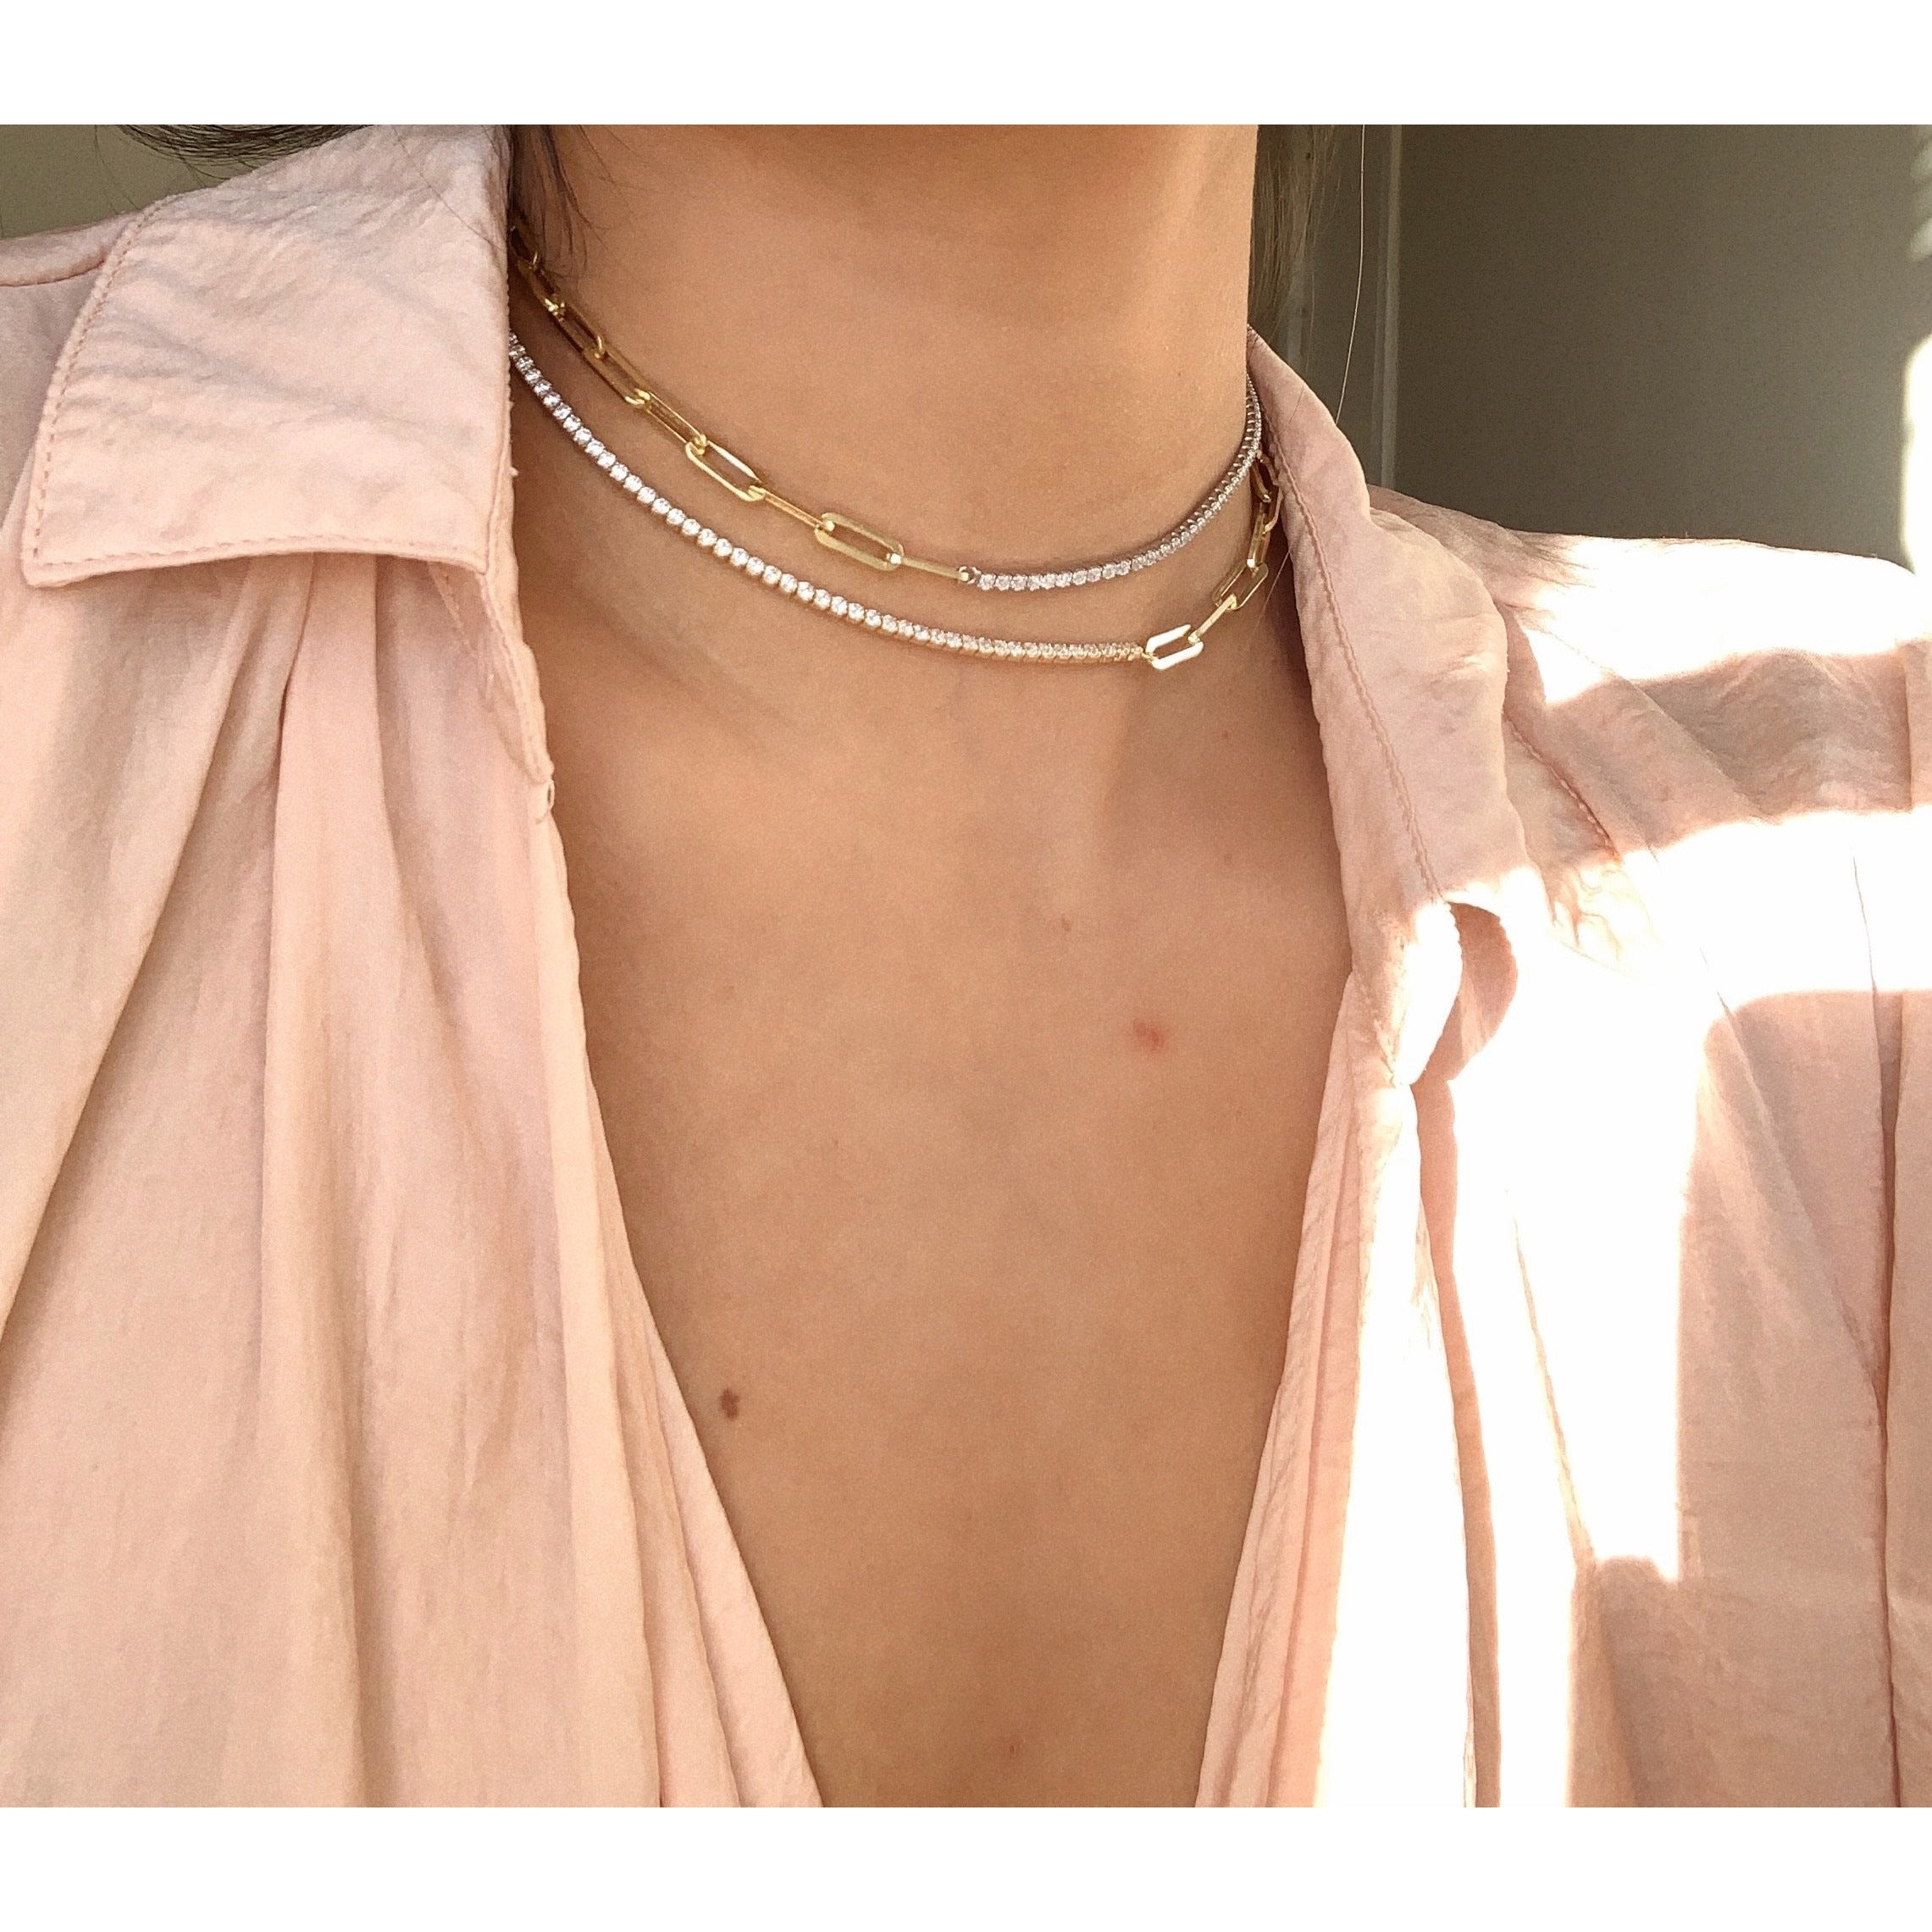 Made in New York City, our beautiful sterling silver paperclip necklace and a tennis necklace on the other side. Hypoallergenic. Available in gold & silver.